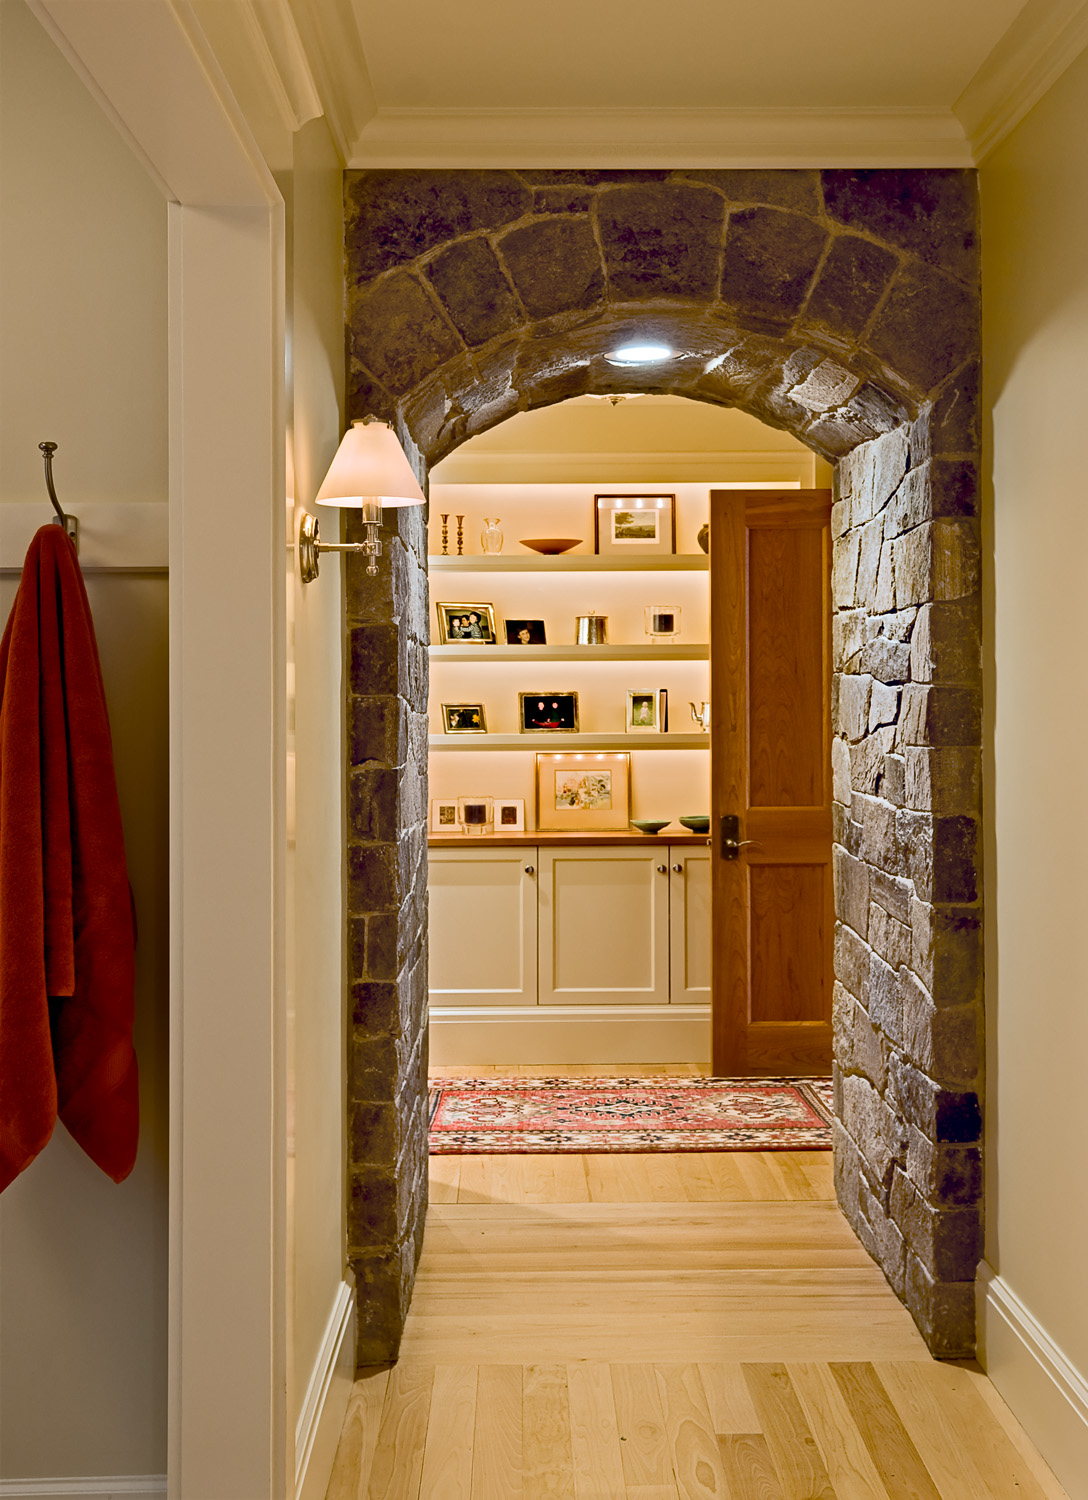 17 Looking through bedroom arch.jpg